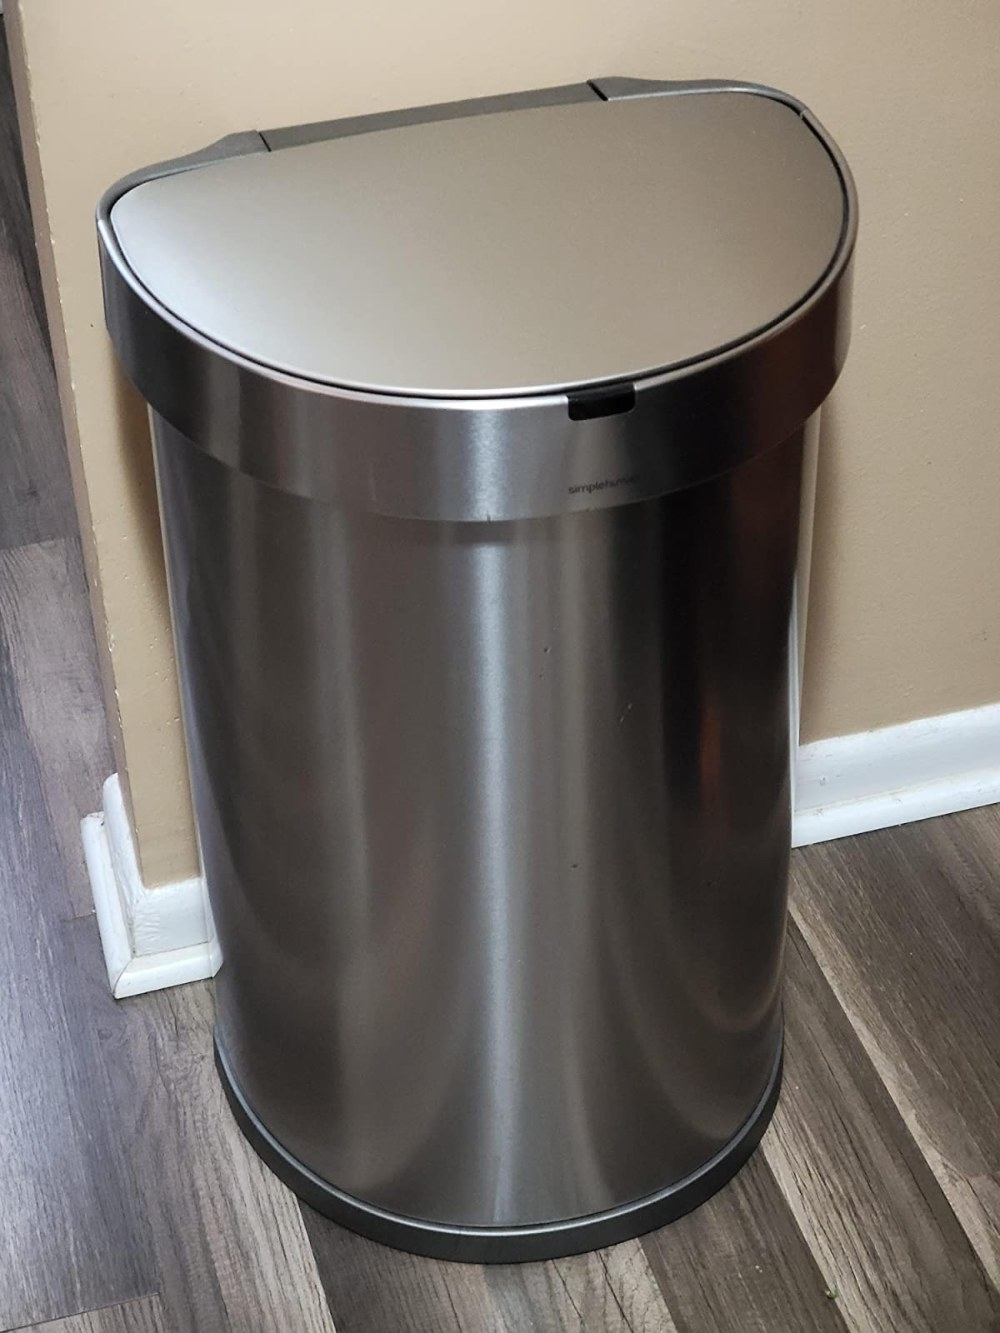 Reviewer's photo of the trash can in the color Brushed Stainless Steel